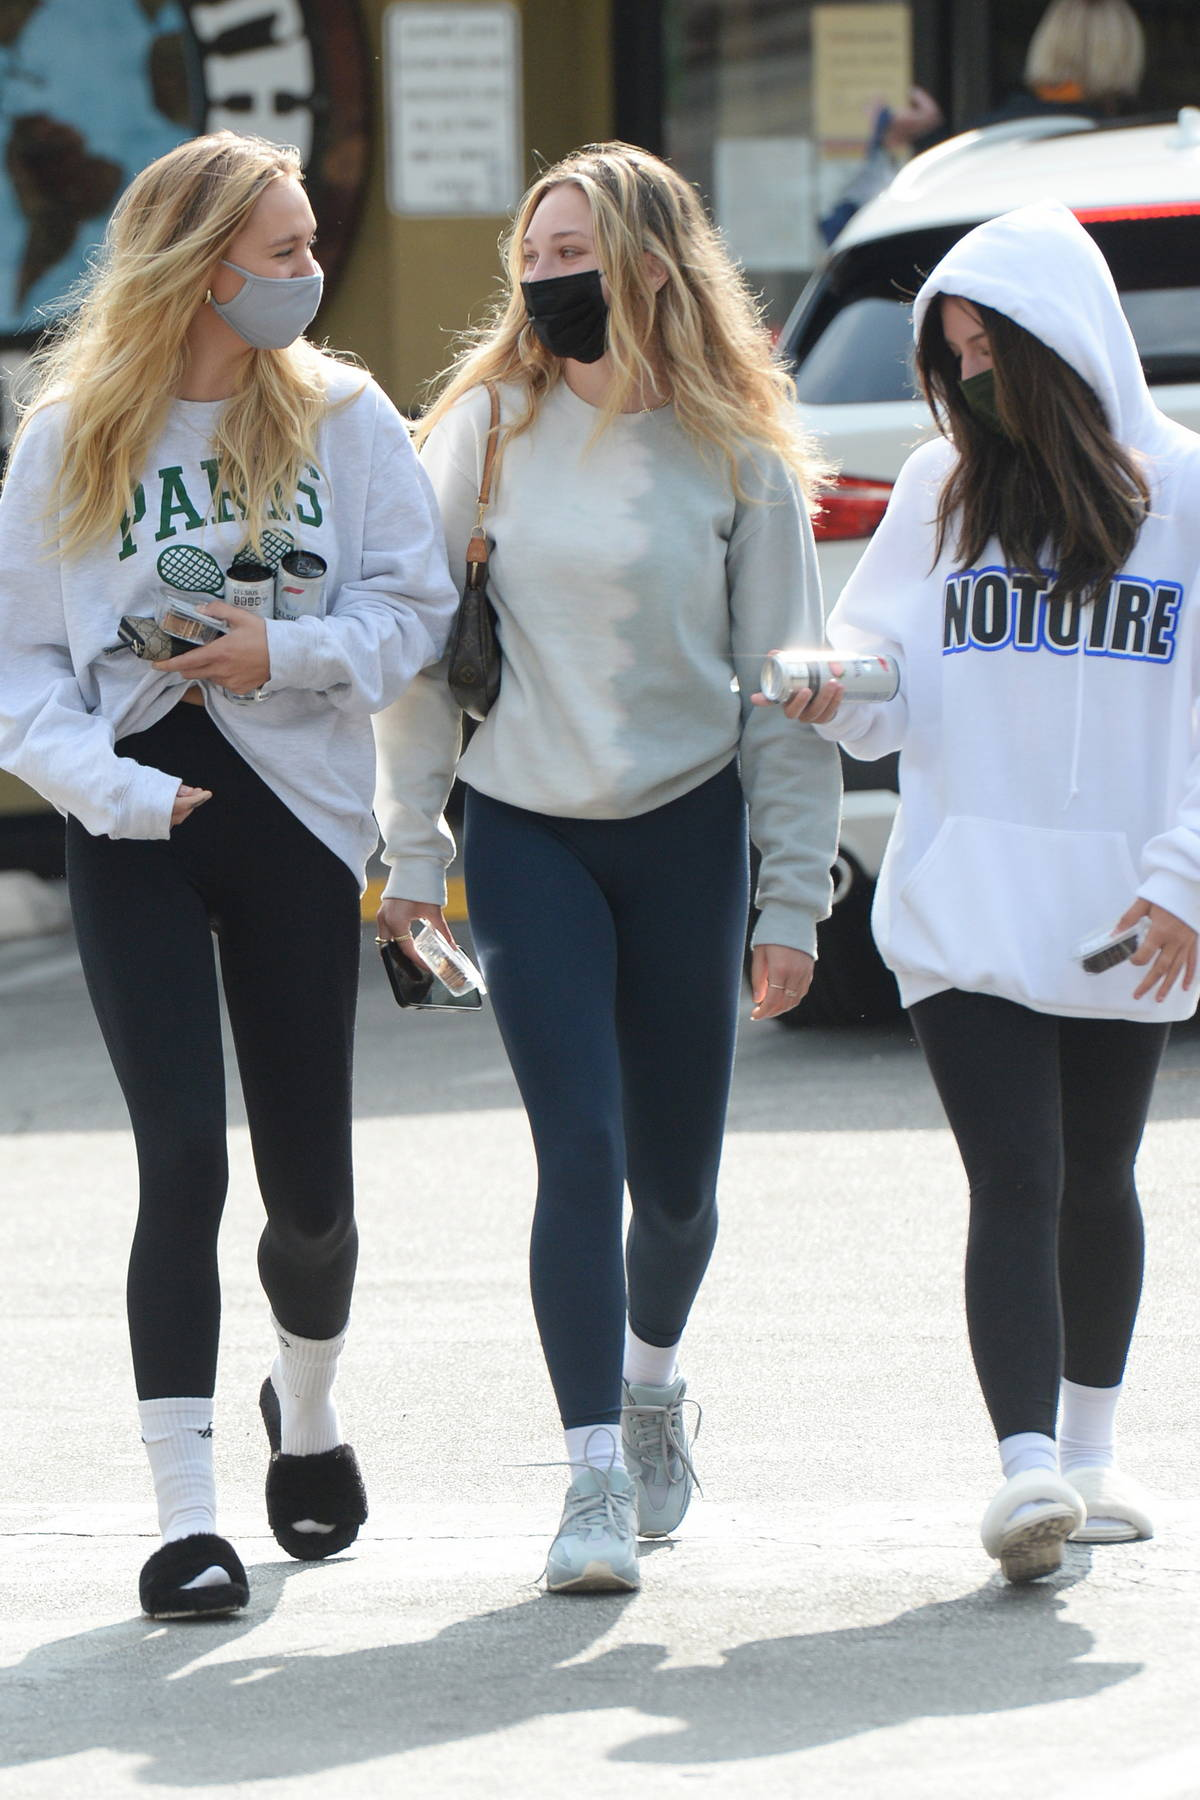 Alexis Ren steps out with Maddie Ziegler and Mackenzie Ziegler in Los Angeles